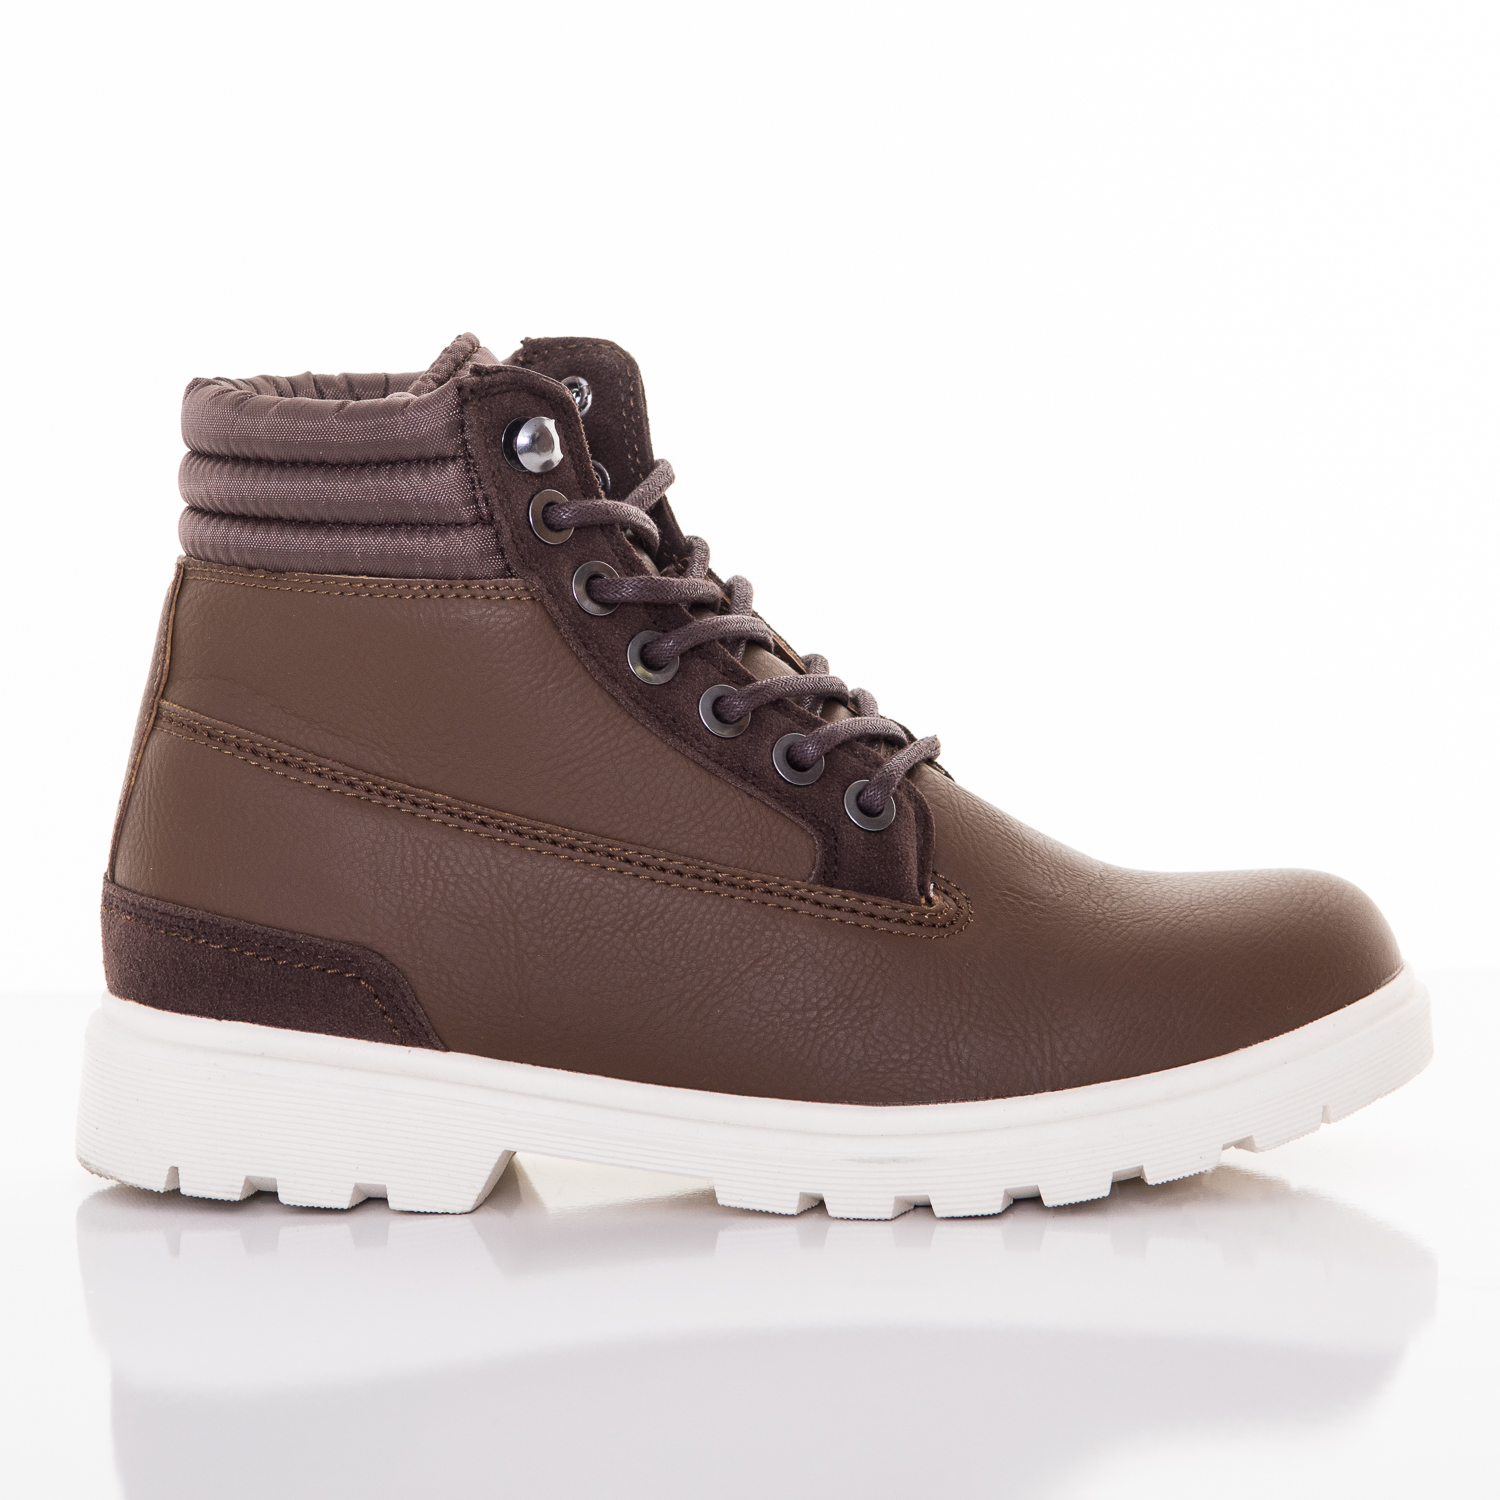 Zimná obuv Urban Classics Winter Boots Brown Darkbrown 36